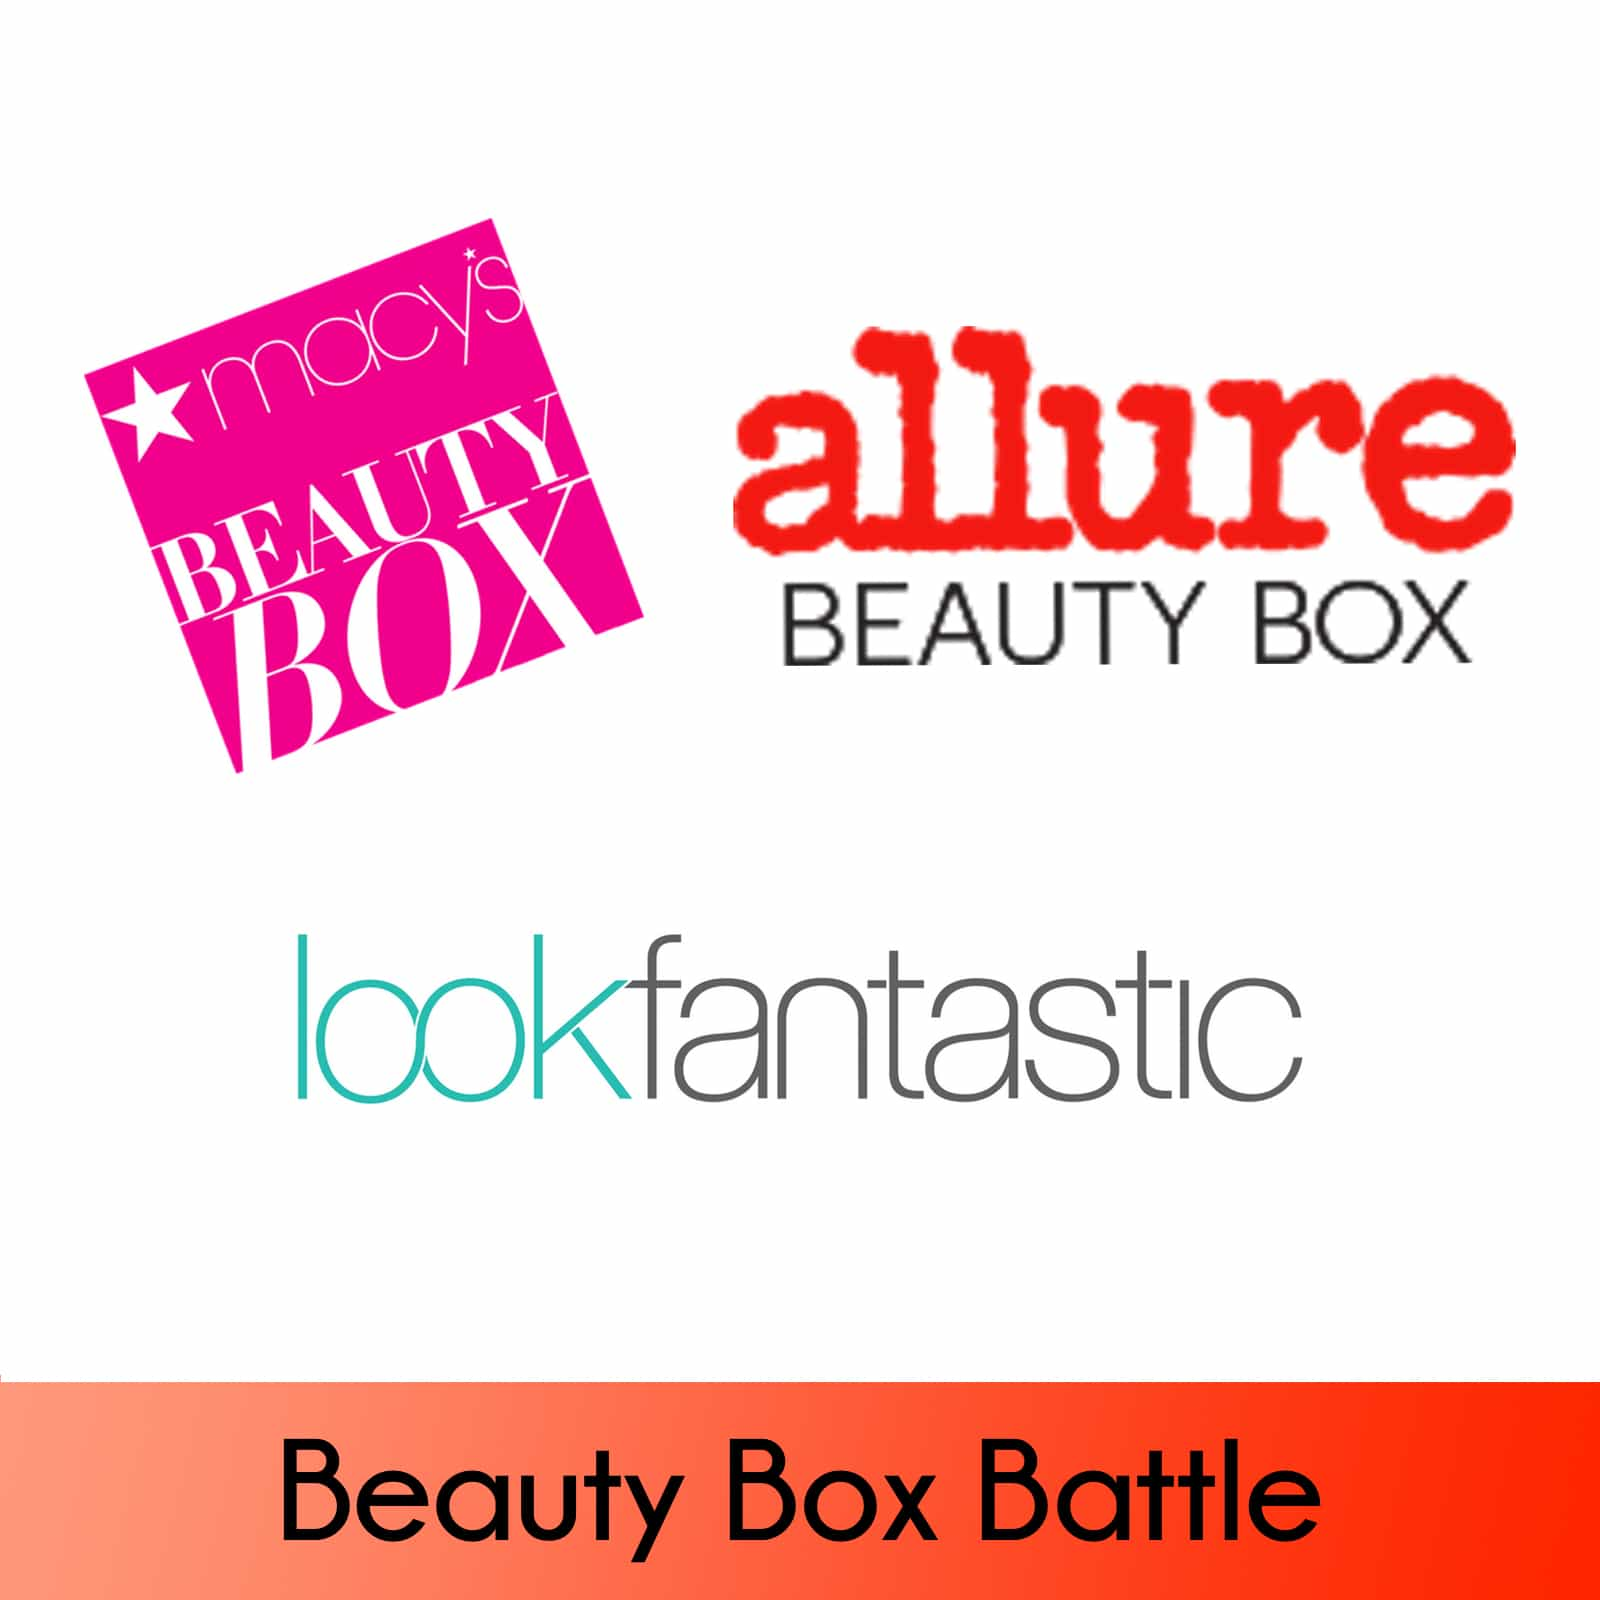 Macy's Beauty Box vs Allure Beauty Box vs Lookfantastic September 2017 Beauty Boxes!